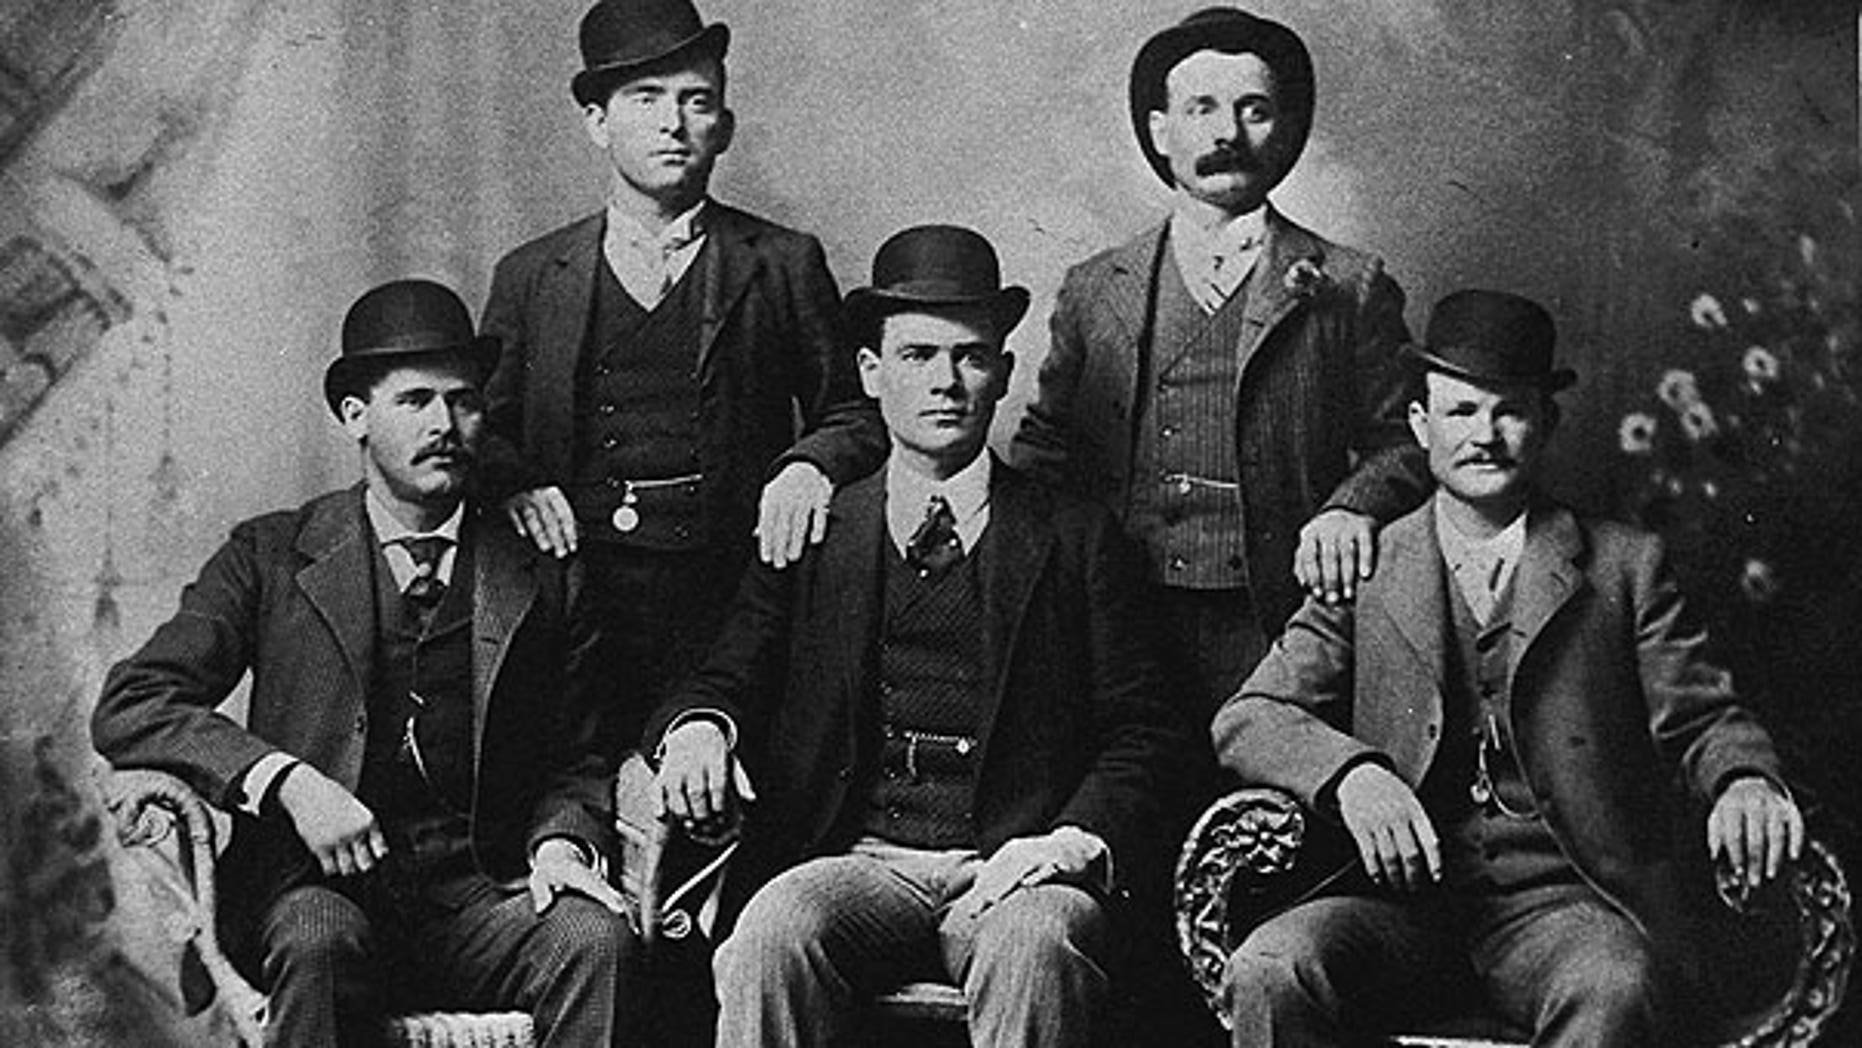 This image provided by the Nevada Historical Society shows the famous group portrait taken in Fort Worth, Texas shortly after Butch Cassidy and his gang robbed the Einnemucca, Nev., bank in 1900.